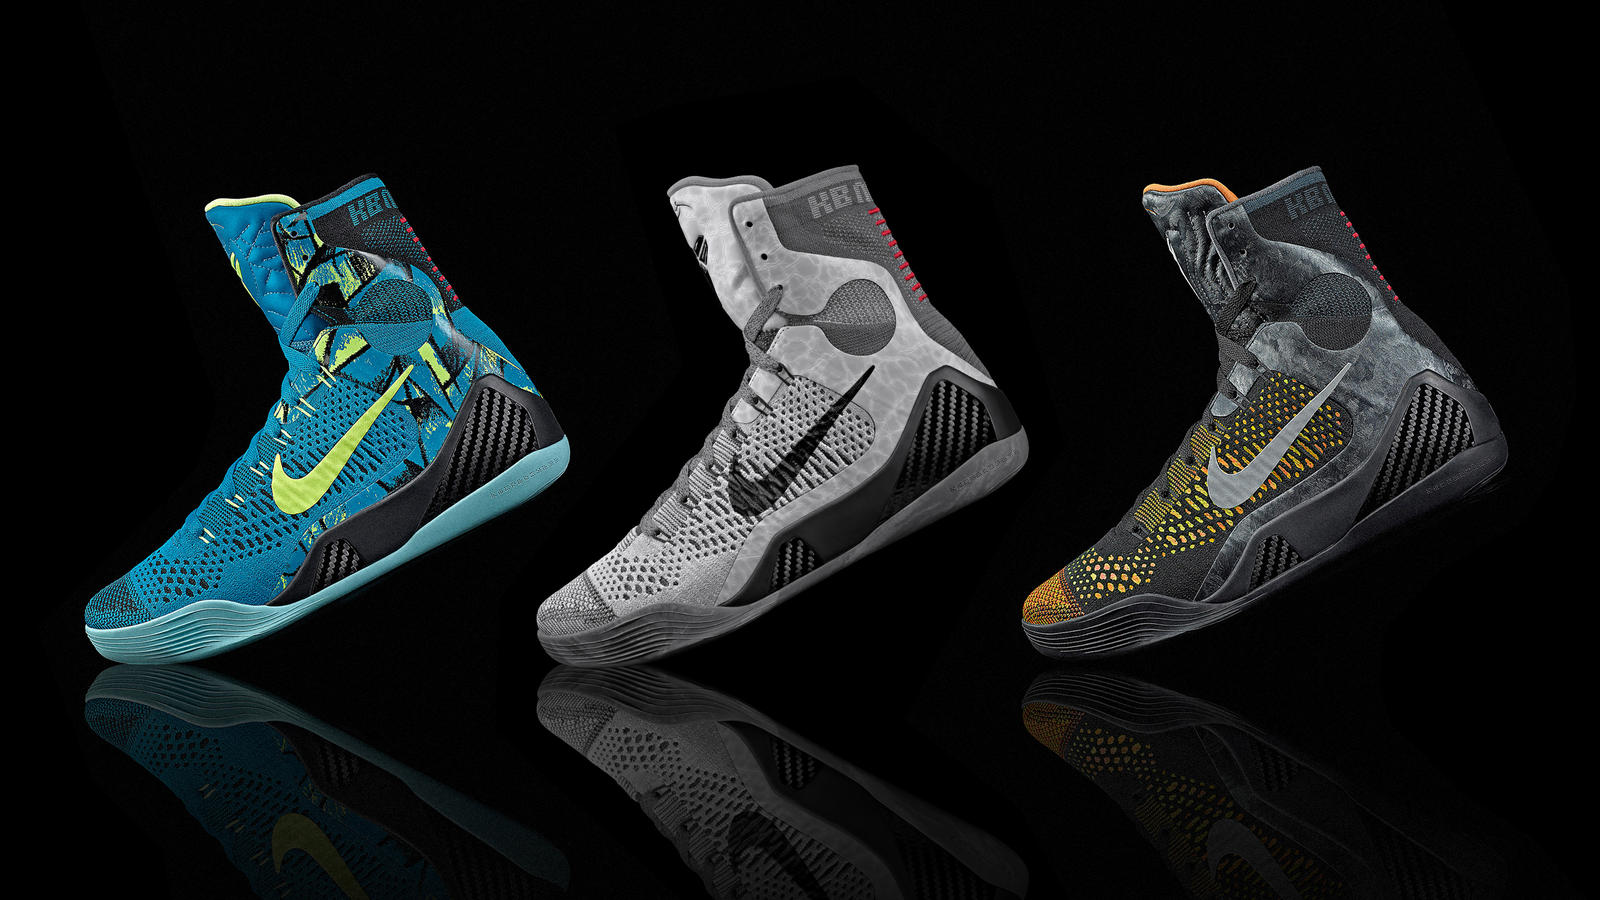 new arrival 1bc0d 4e502 Triple Threat: New KOBE 9 Elite Colorways - Nike News